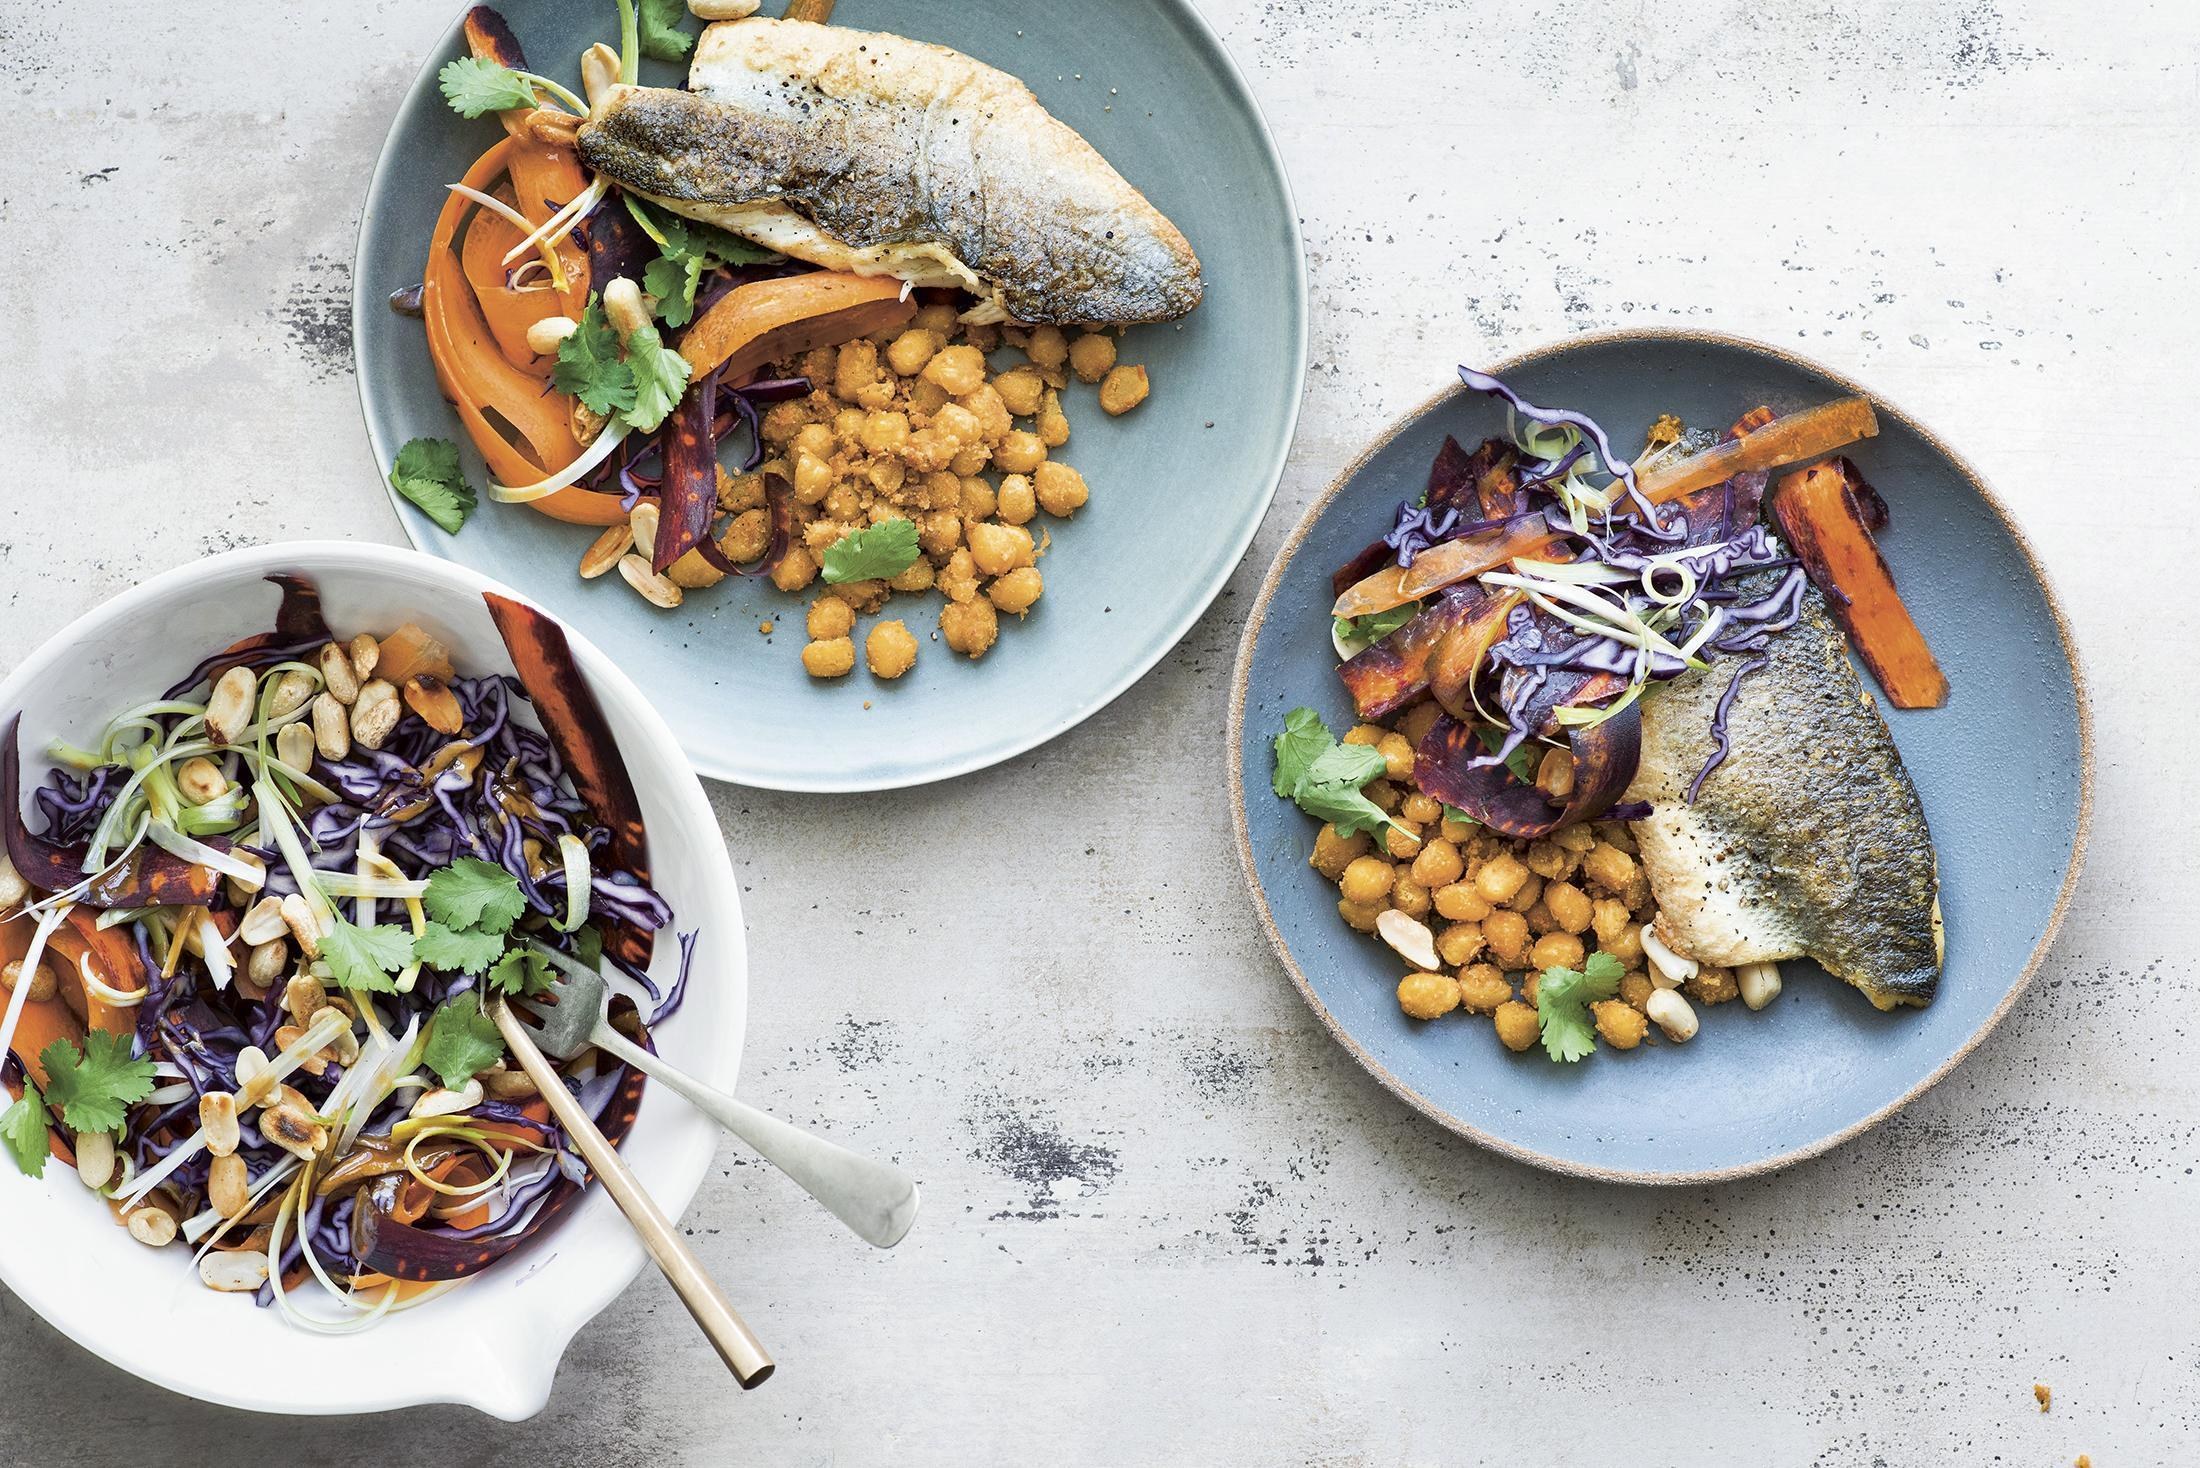 Sea bass with a sesame chickpea cabbage slaw